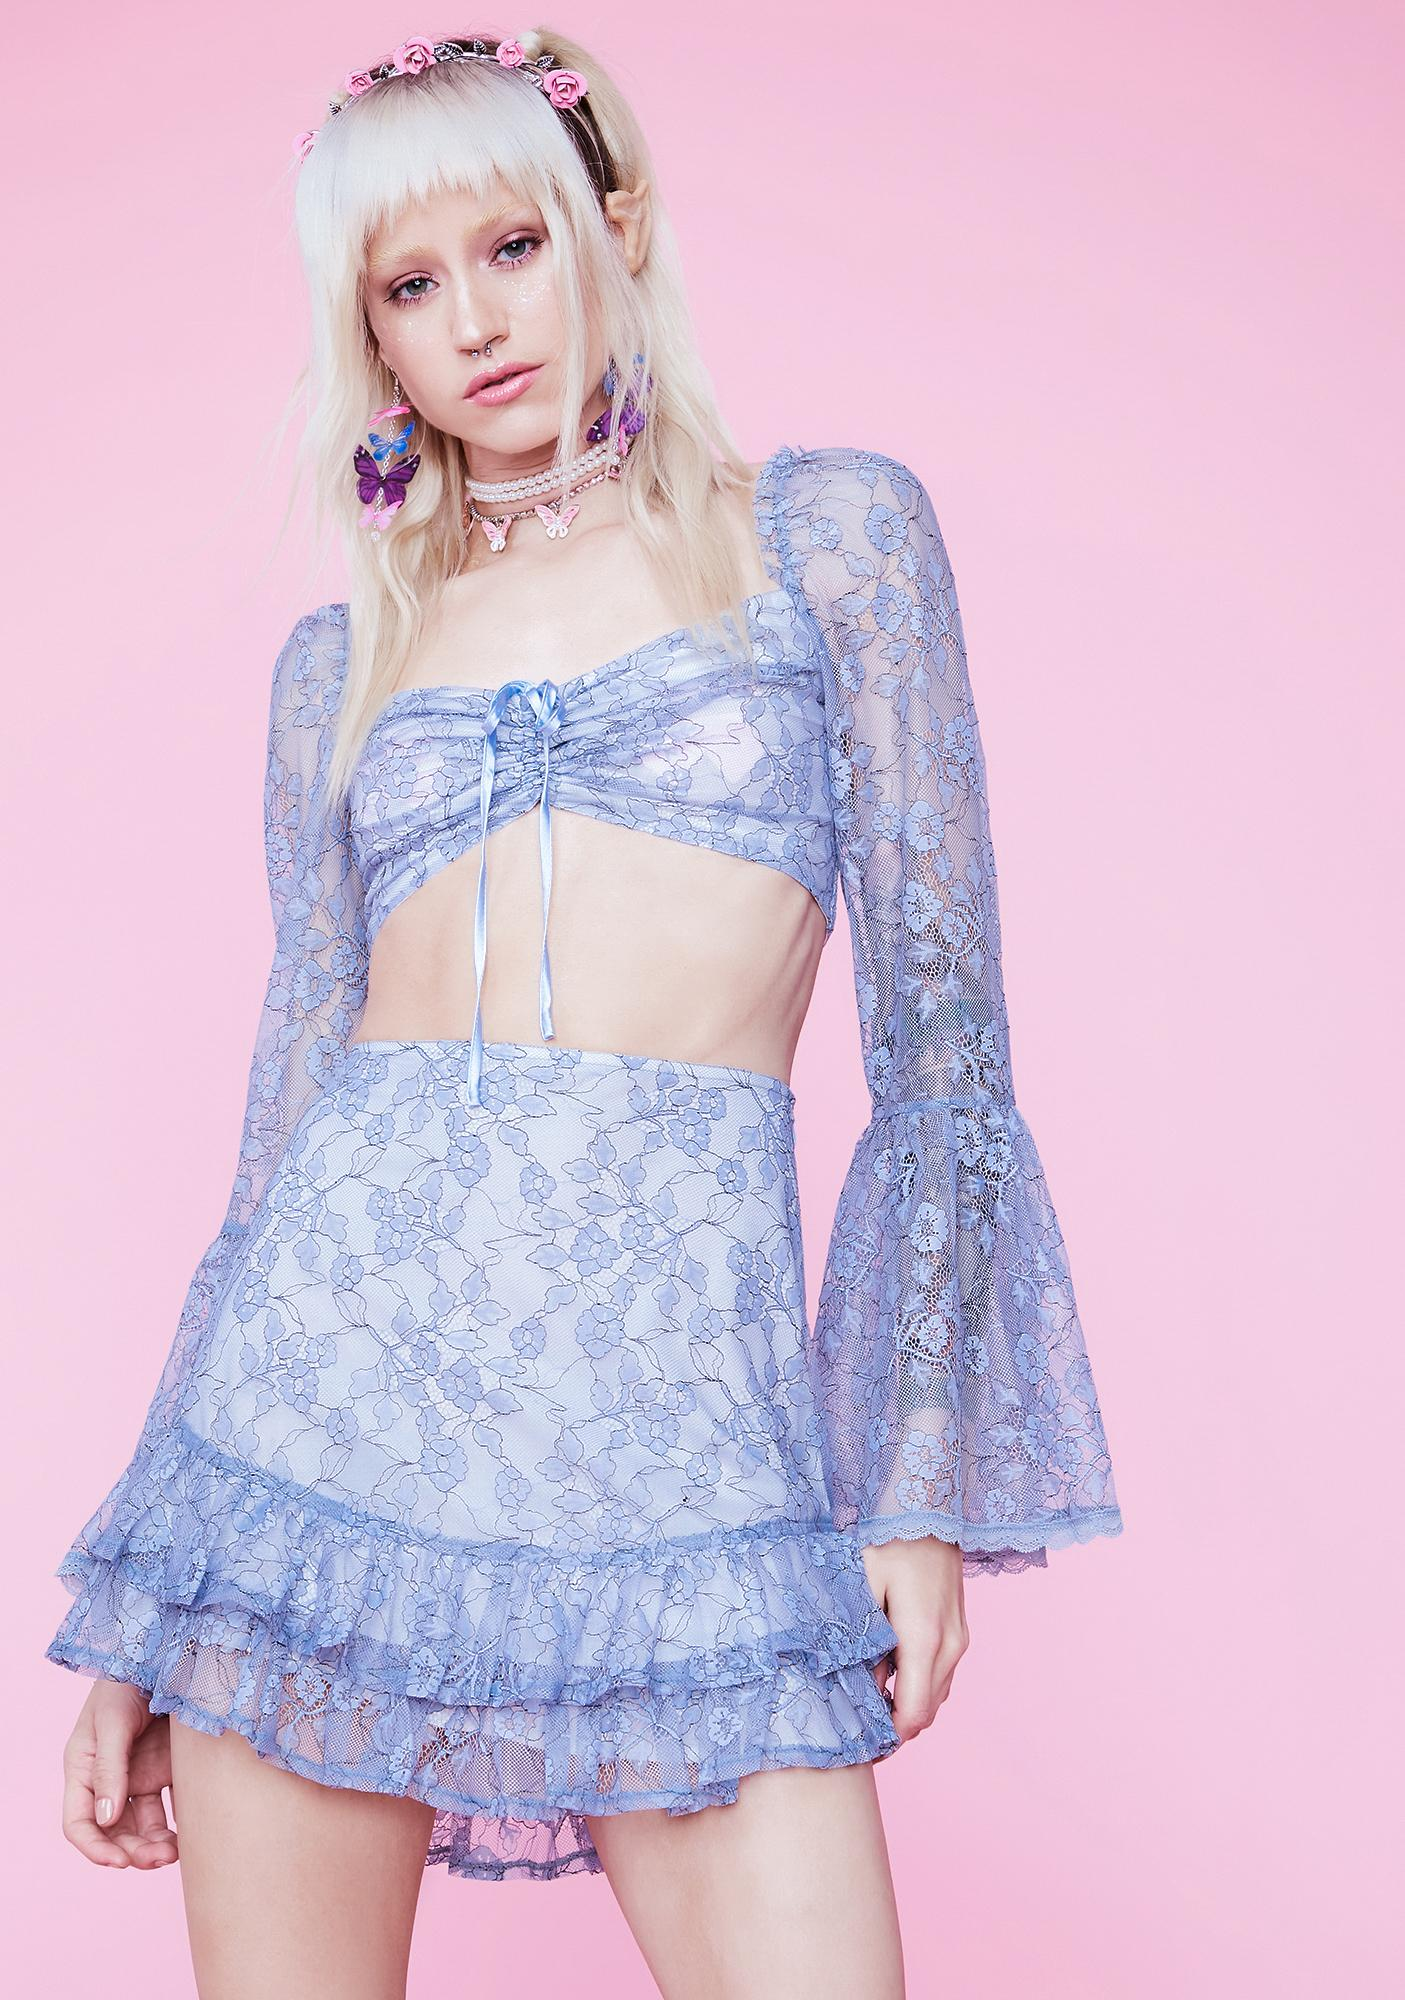 Sugar Thrillz We Are Stardust Floral Lace Mini Skirt